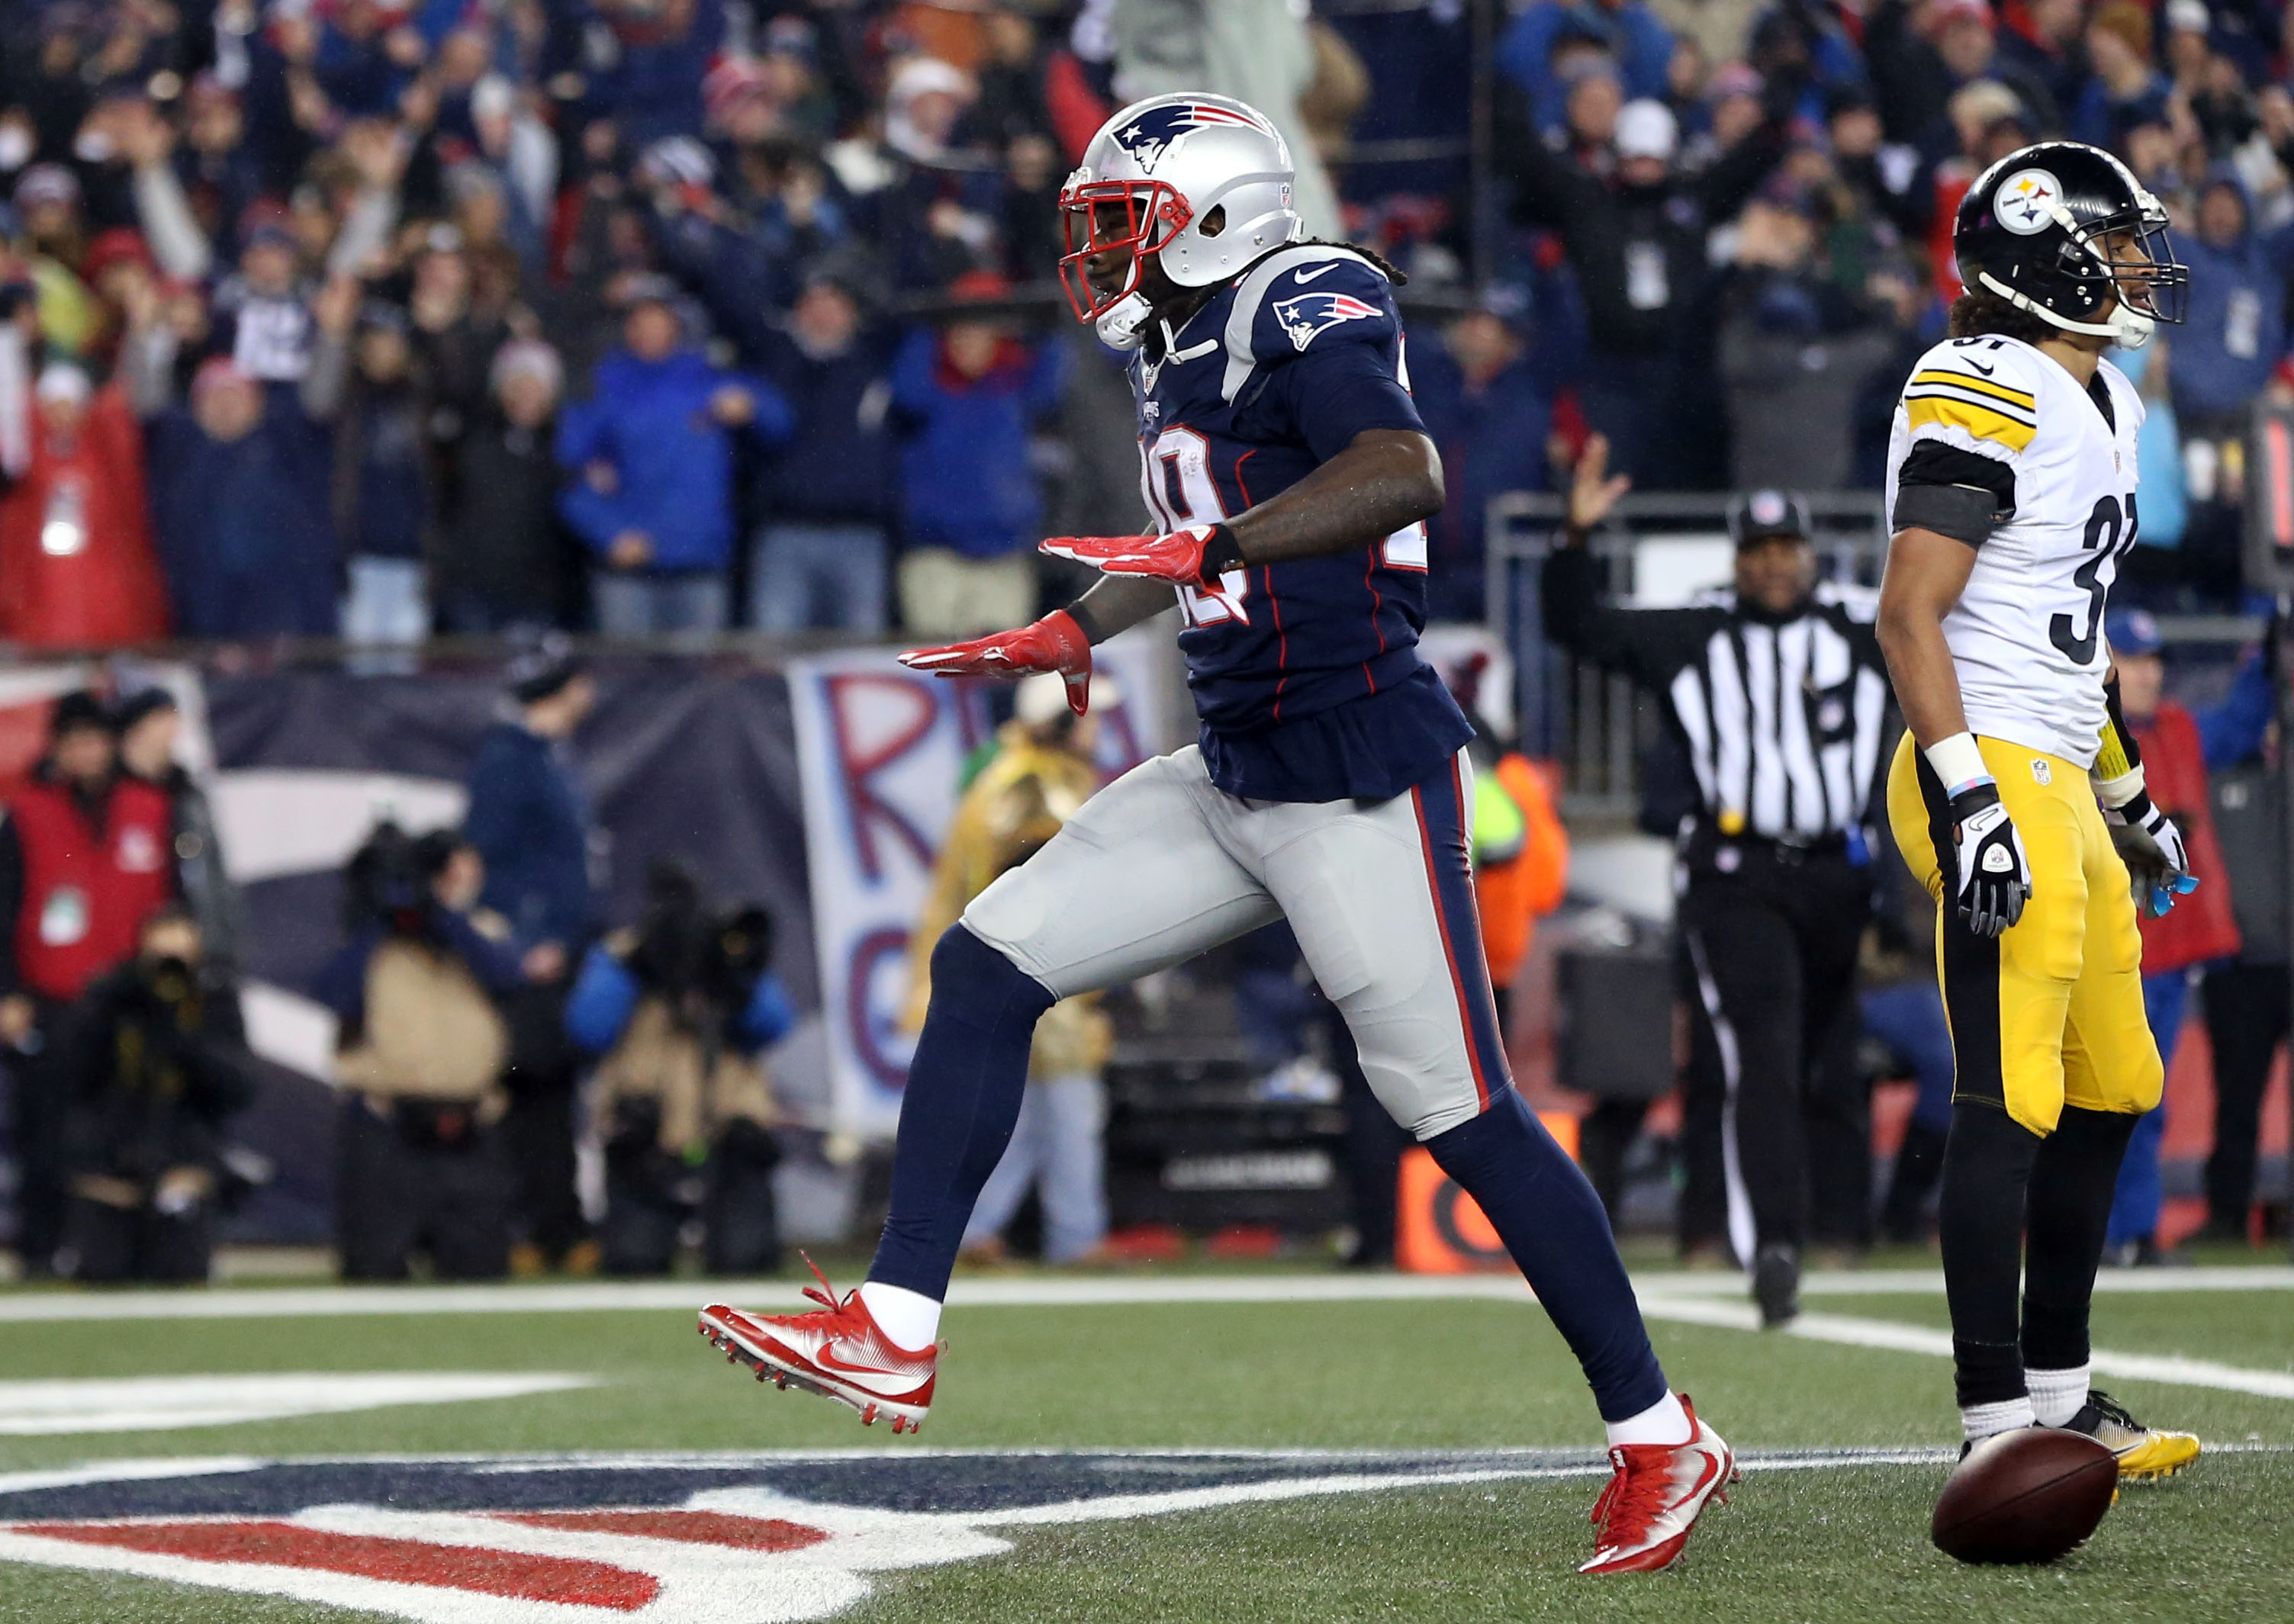 9832868-nfl-afc-championship-pittsburgh-steelers-at-new-england-patriots